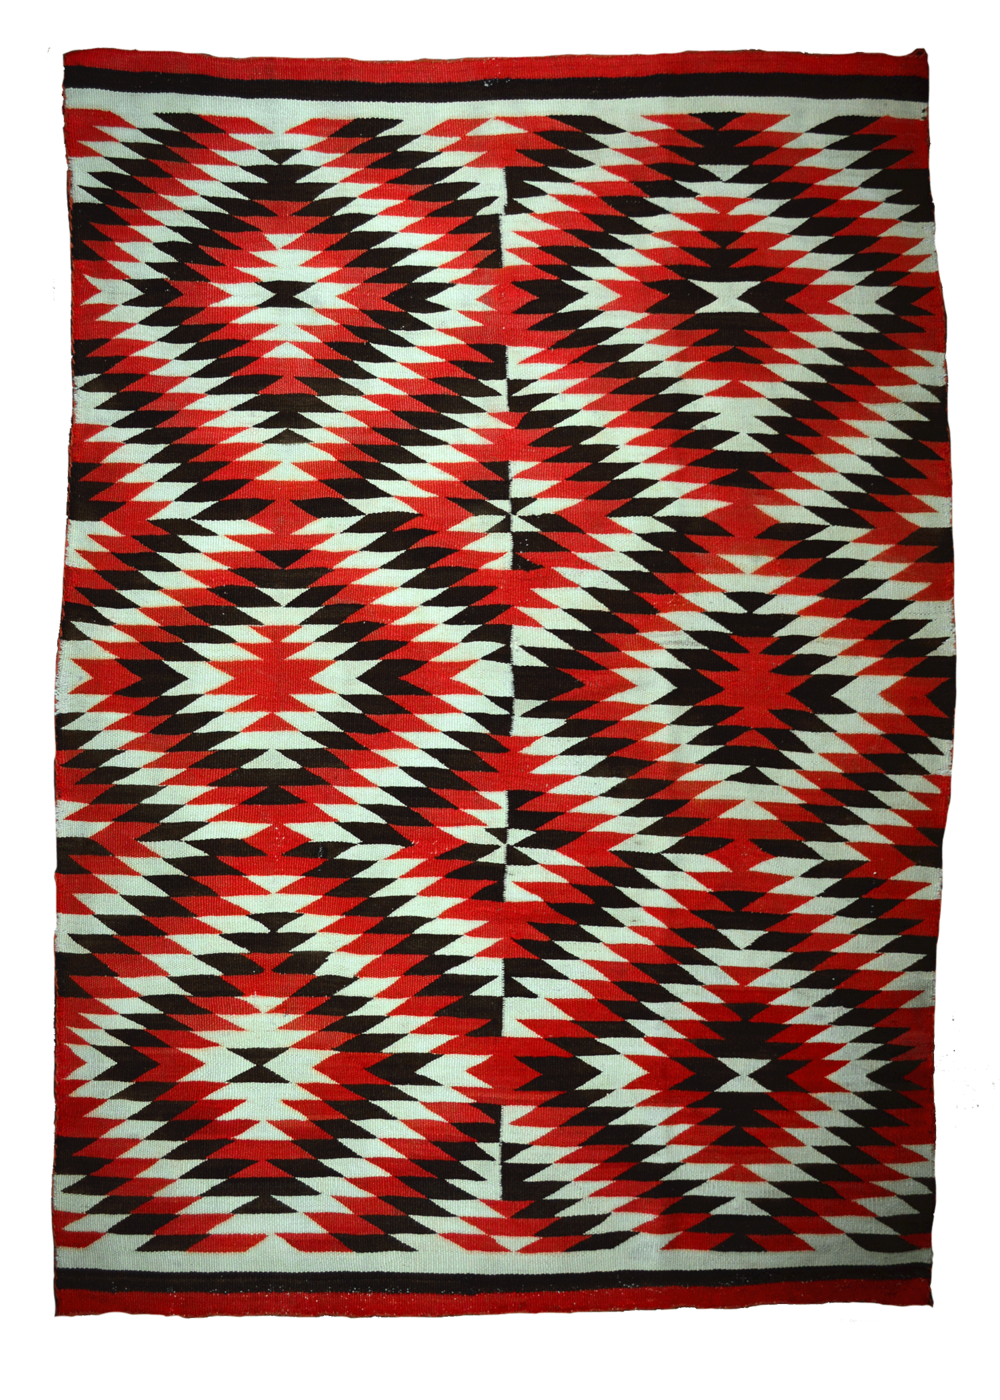 "Eye-Dazzler Navajo Floor  Rug   Handspun Natural Dyed Wool with Commercial Reds - c.1890  69"" x 48"" // CRT0004"